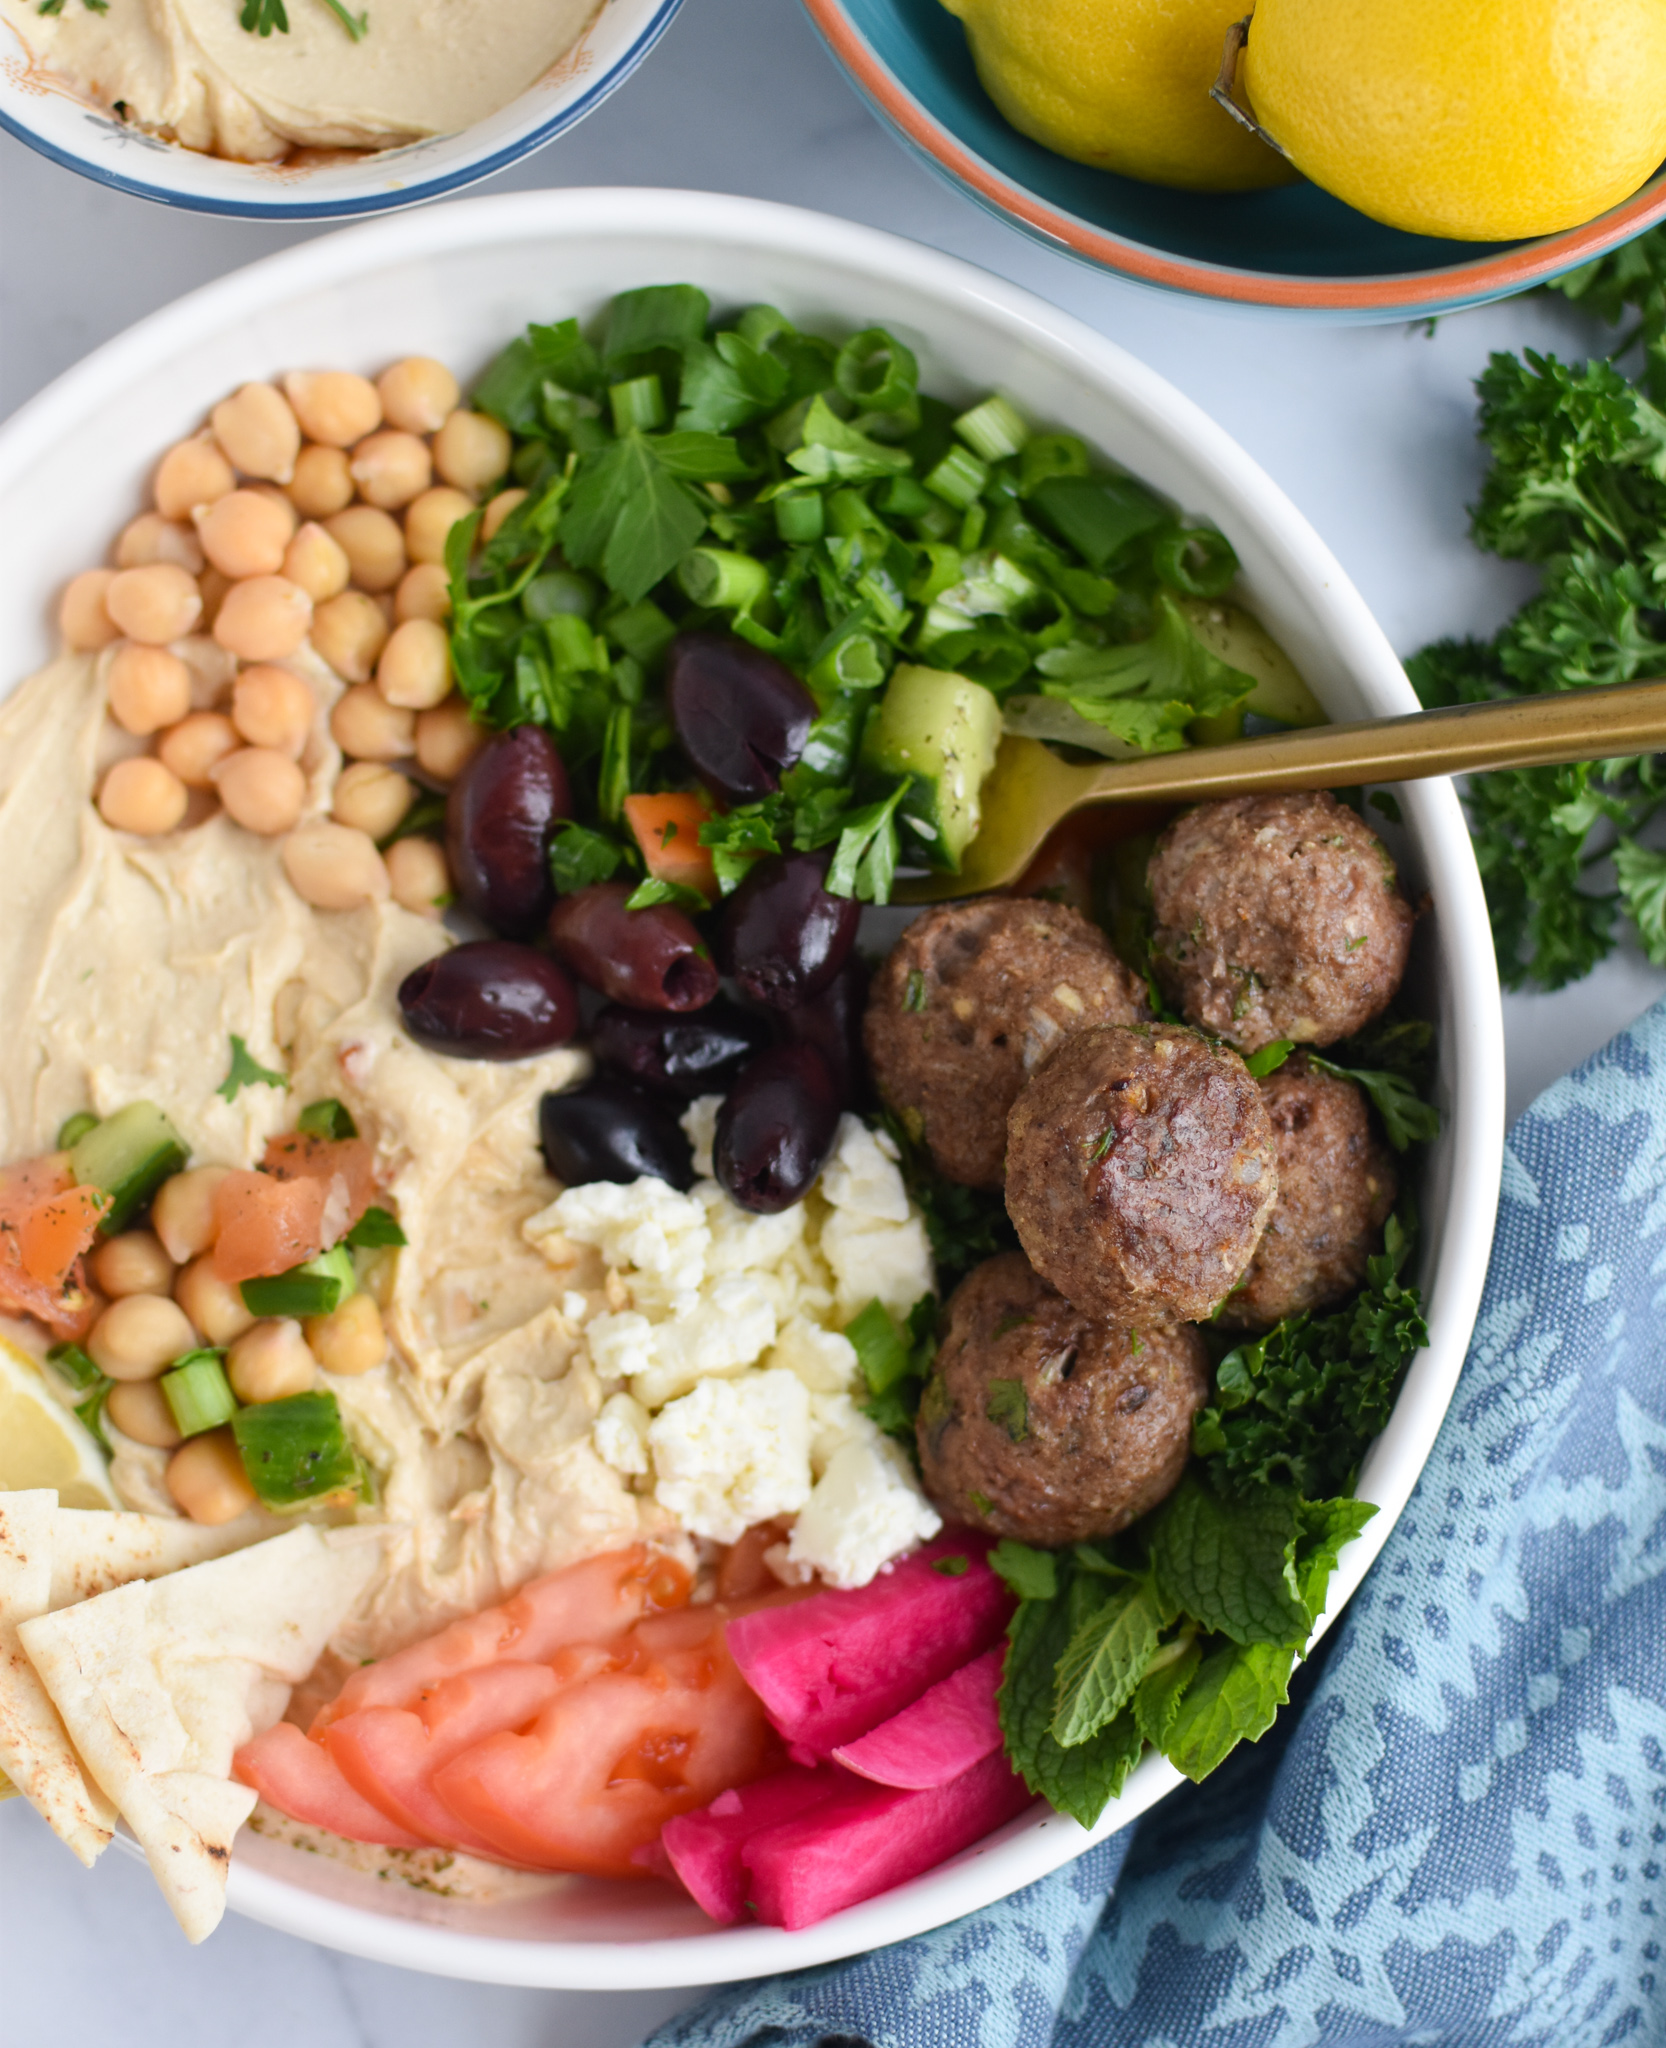 Lamb Kofta in hummus bowl with fork.